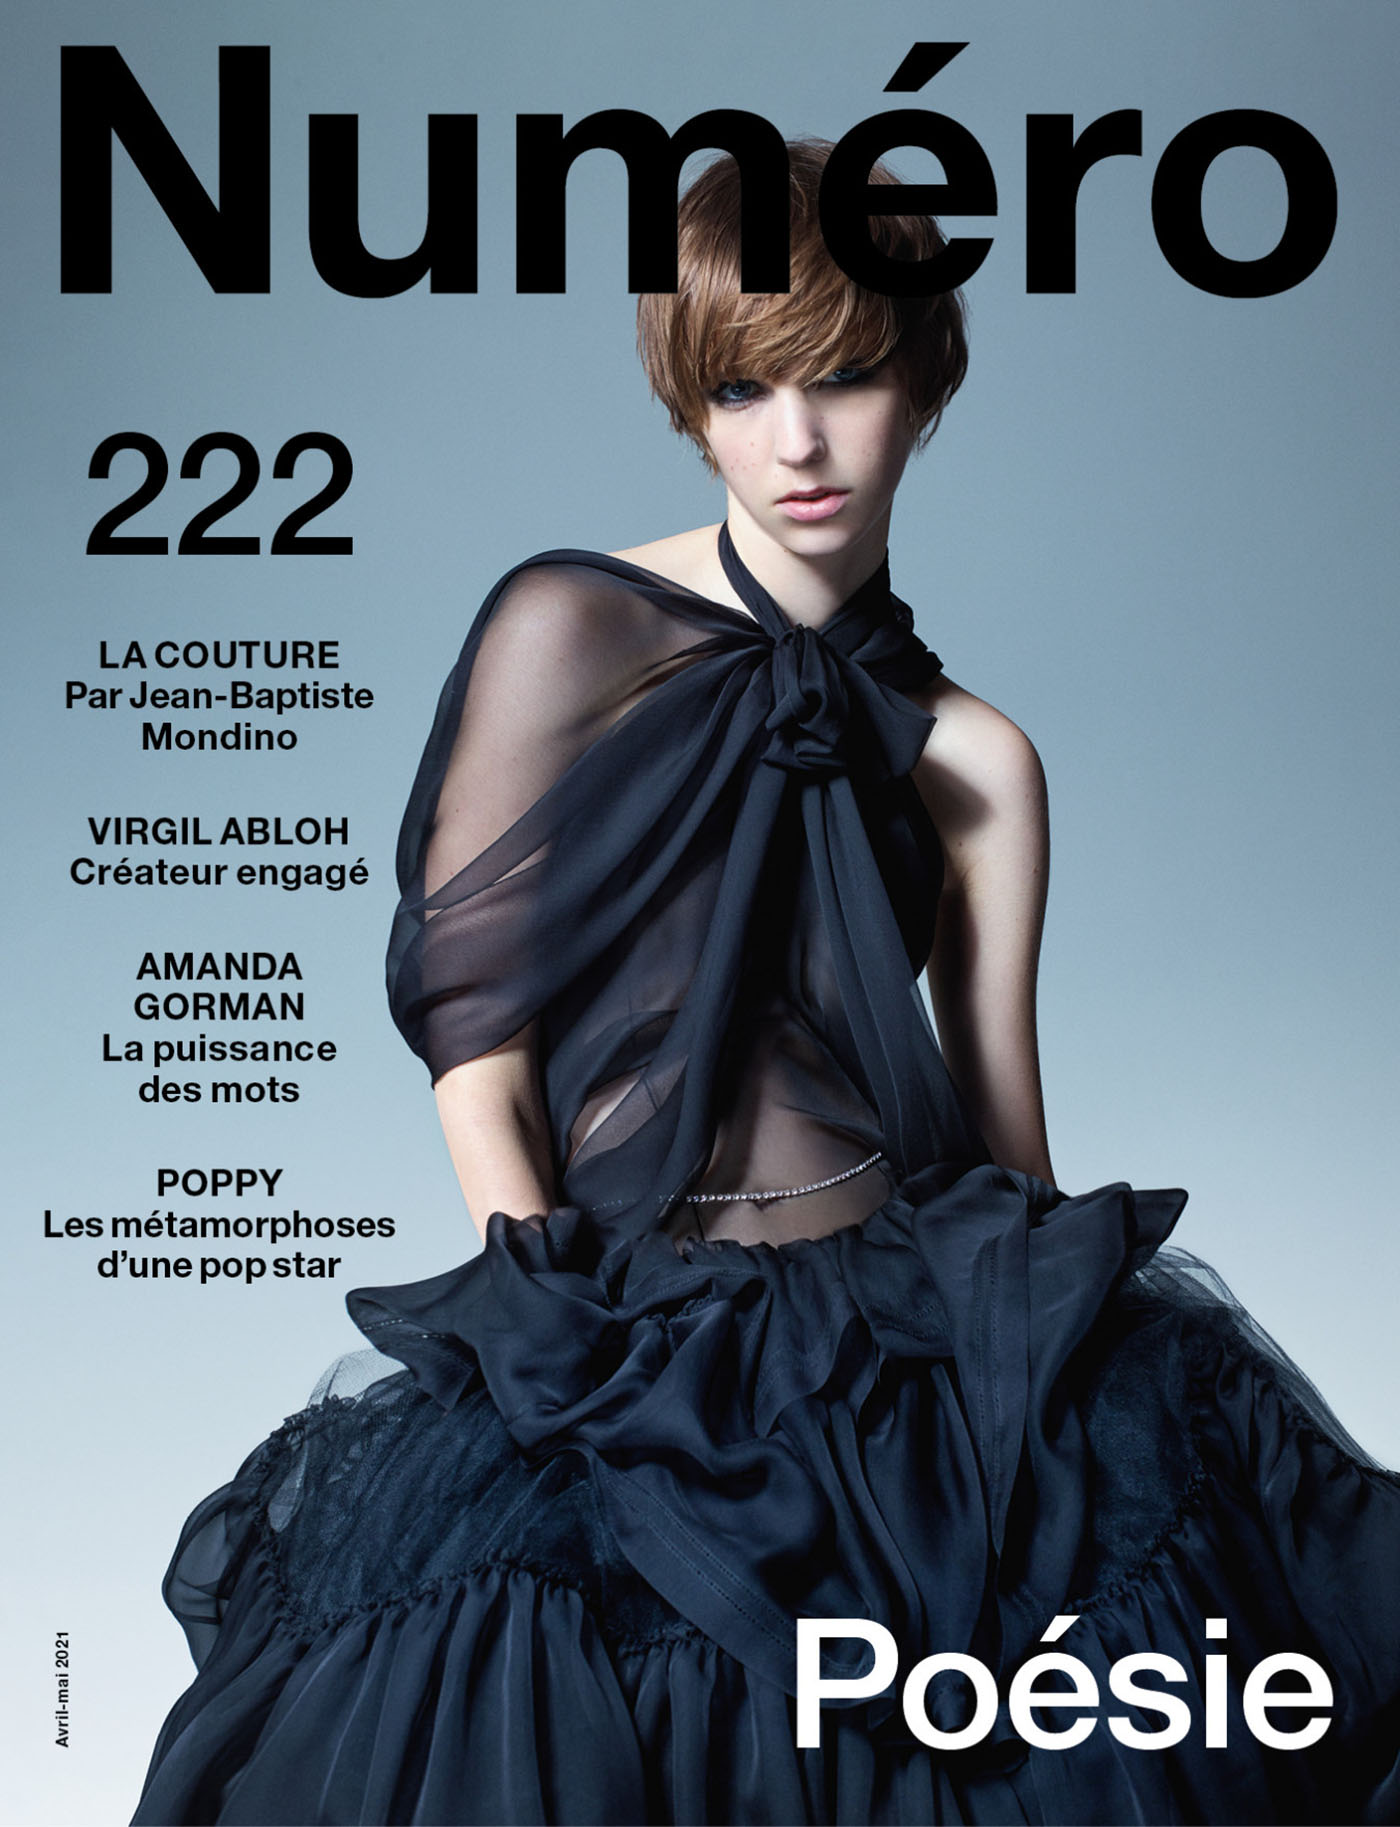 Bente Oort and Ajok Madel covers Numéro April May 2021 by Jean-Baptiste Mondino